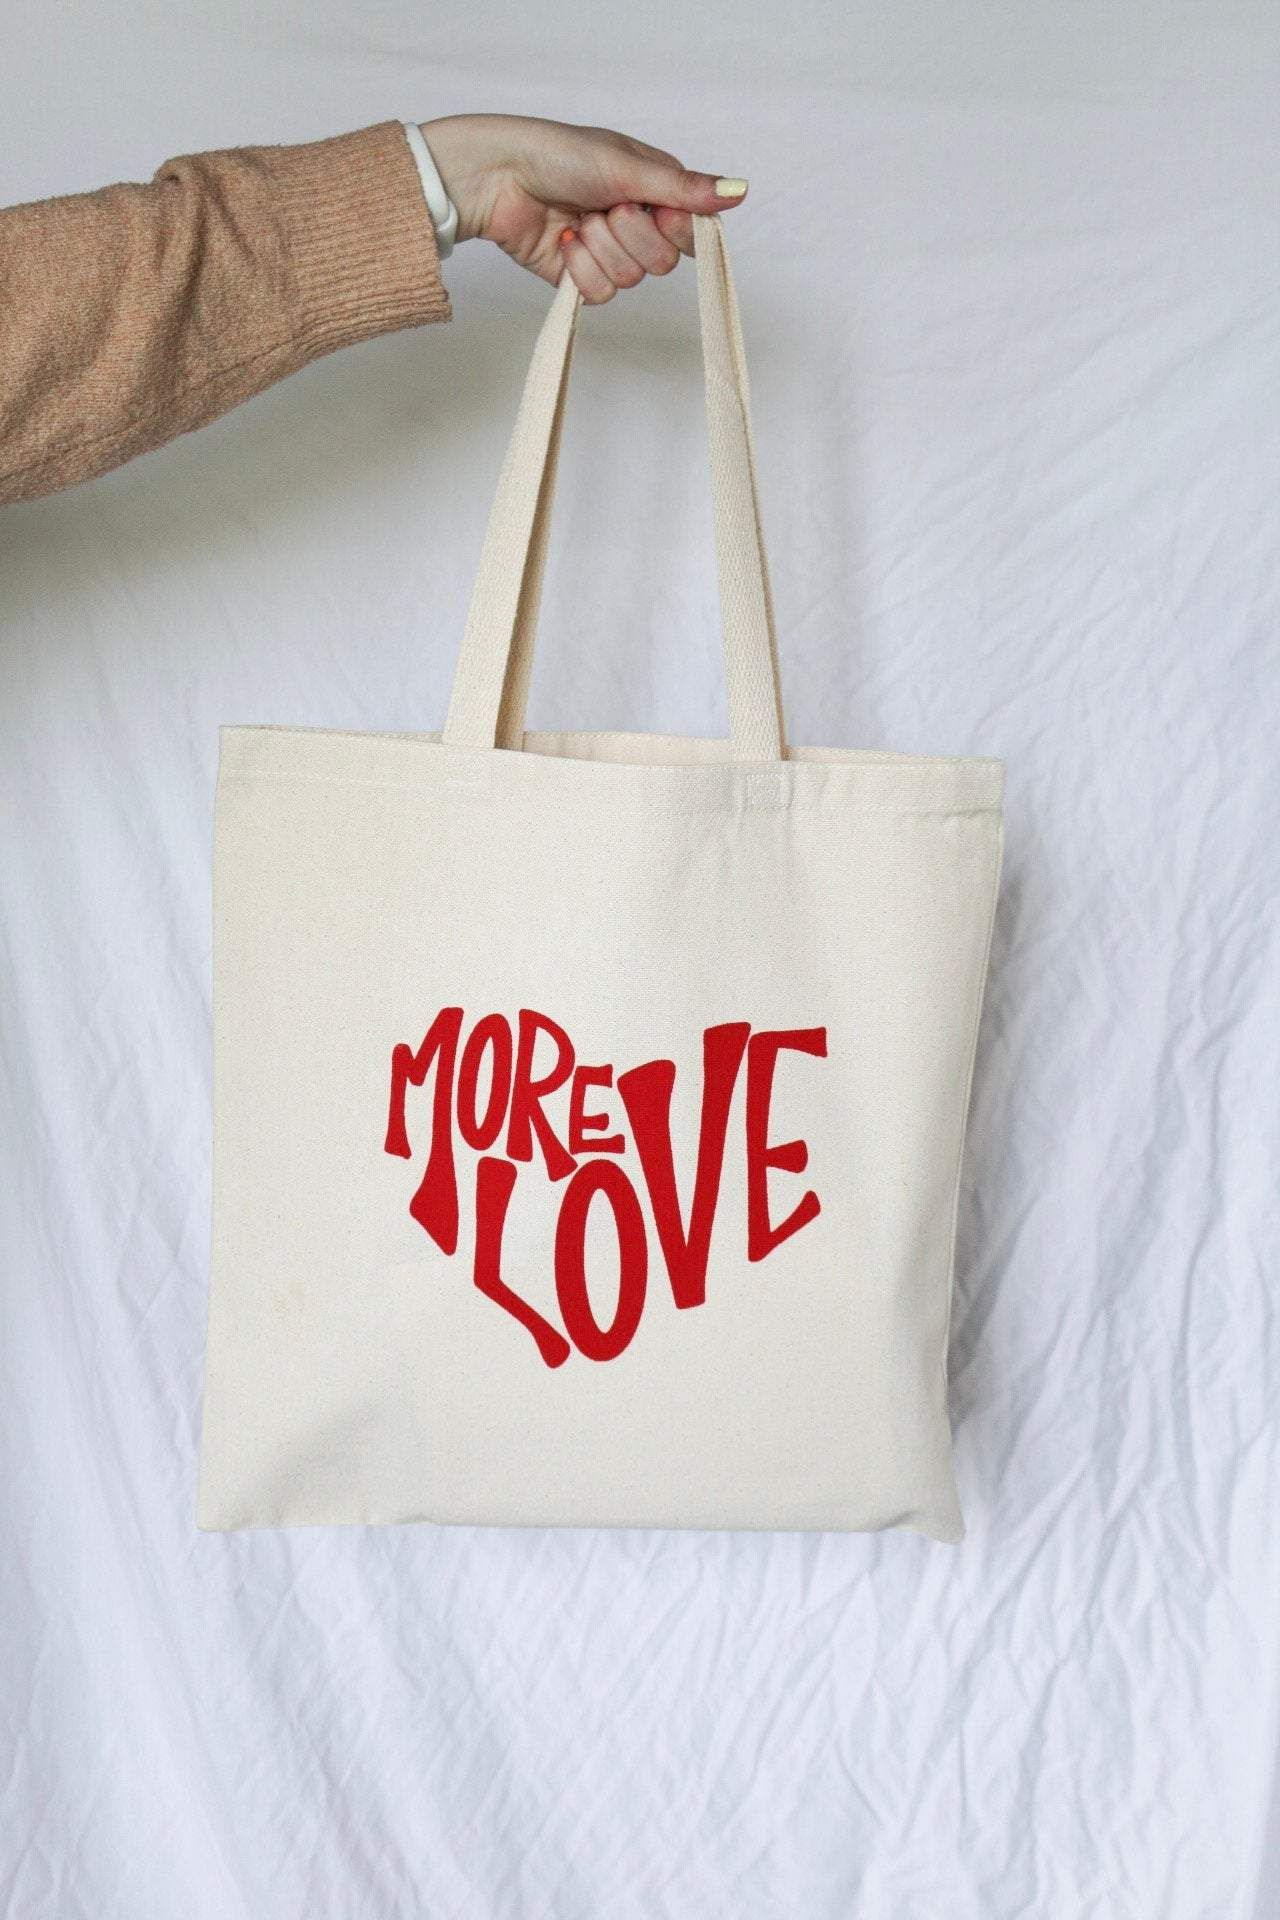 """**50% of proceeds from our 'More Love' products will go towards Be The Bridge and the Loveland Foundation. Founded by Rachel Cargle, the Loveland Foundation focuses on providing opportunities and healing to communities of color, especially women and girls. Be The Bridge is focused on bringing awareness and responding to the racial brokenness and systemic injustice within our country all while grounded in truth.** This adorable tote bag features a hand lettered quote reading """"more love."""" It's the"""